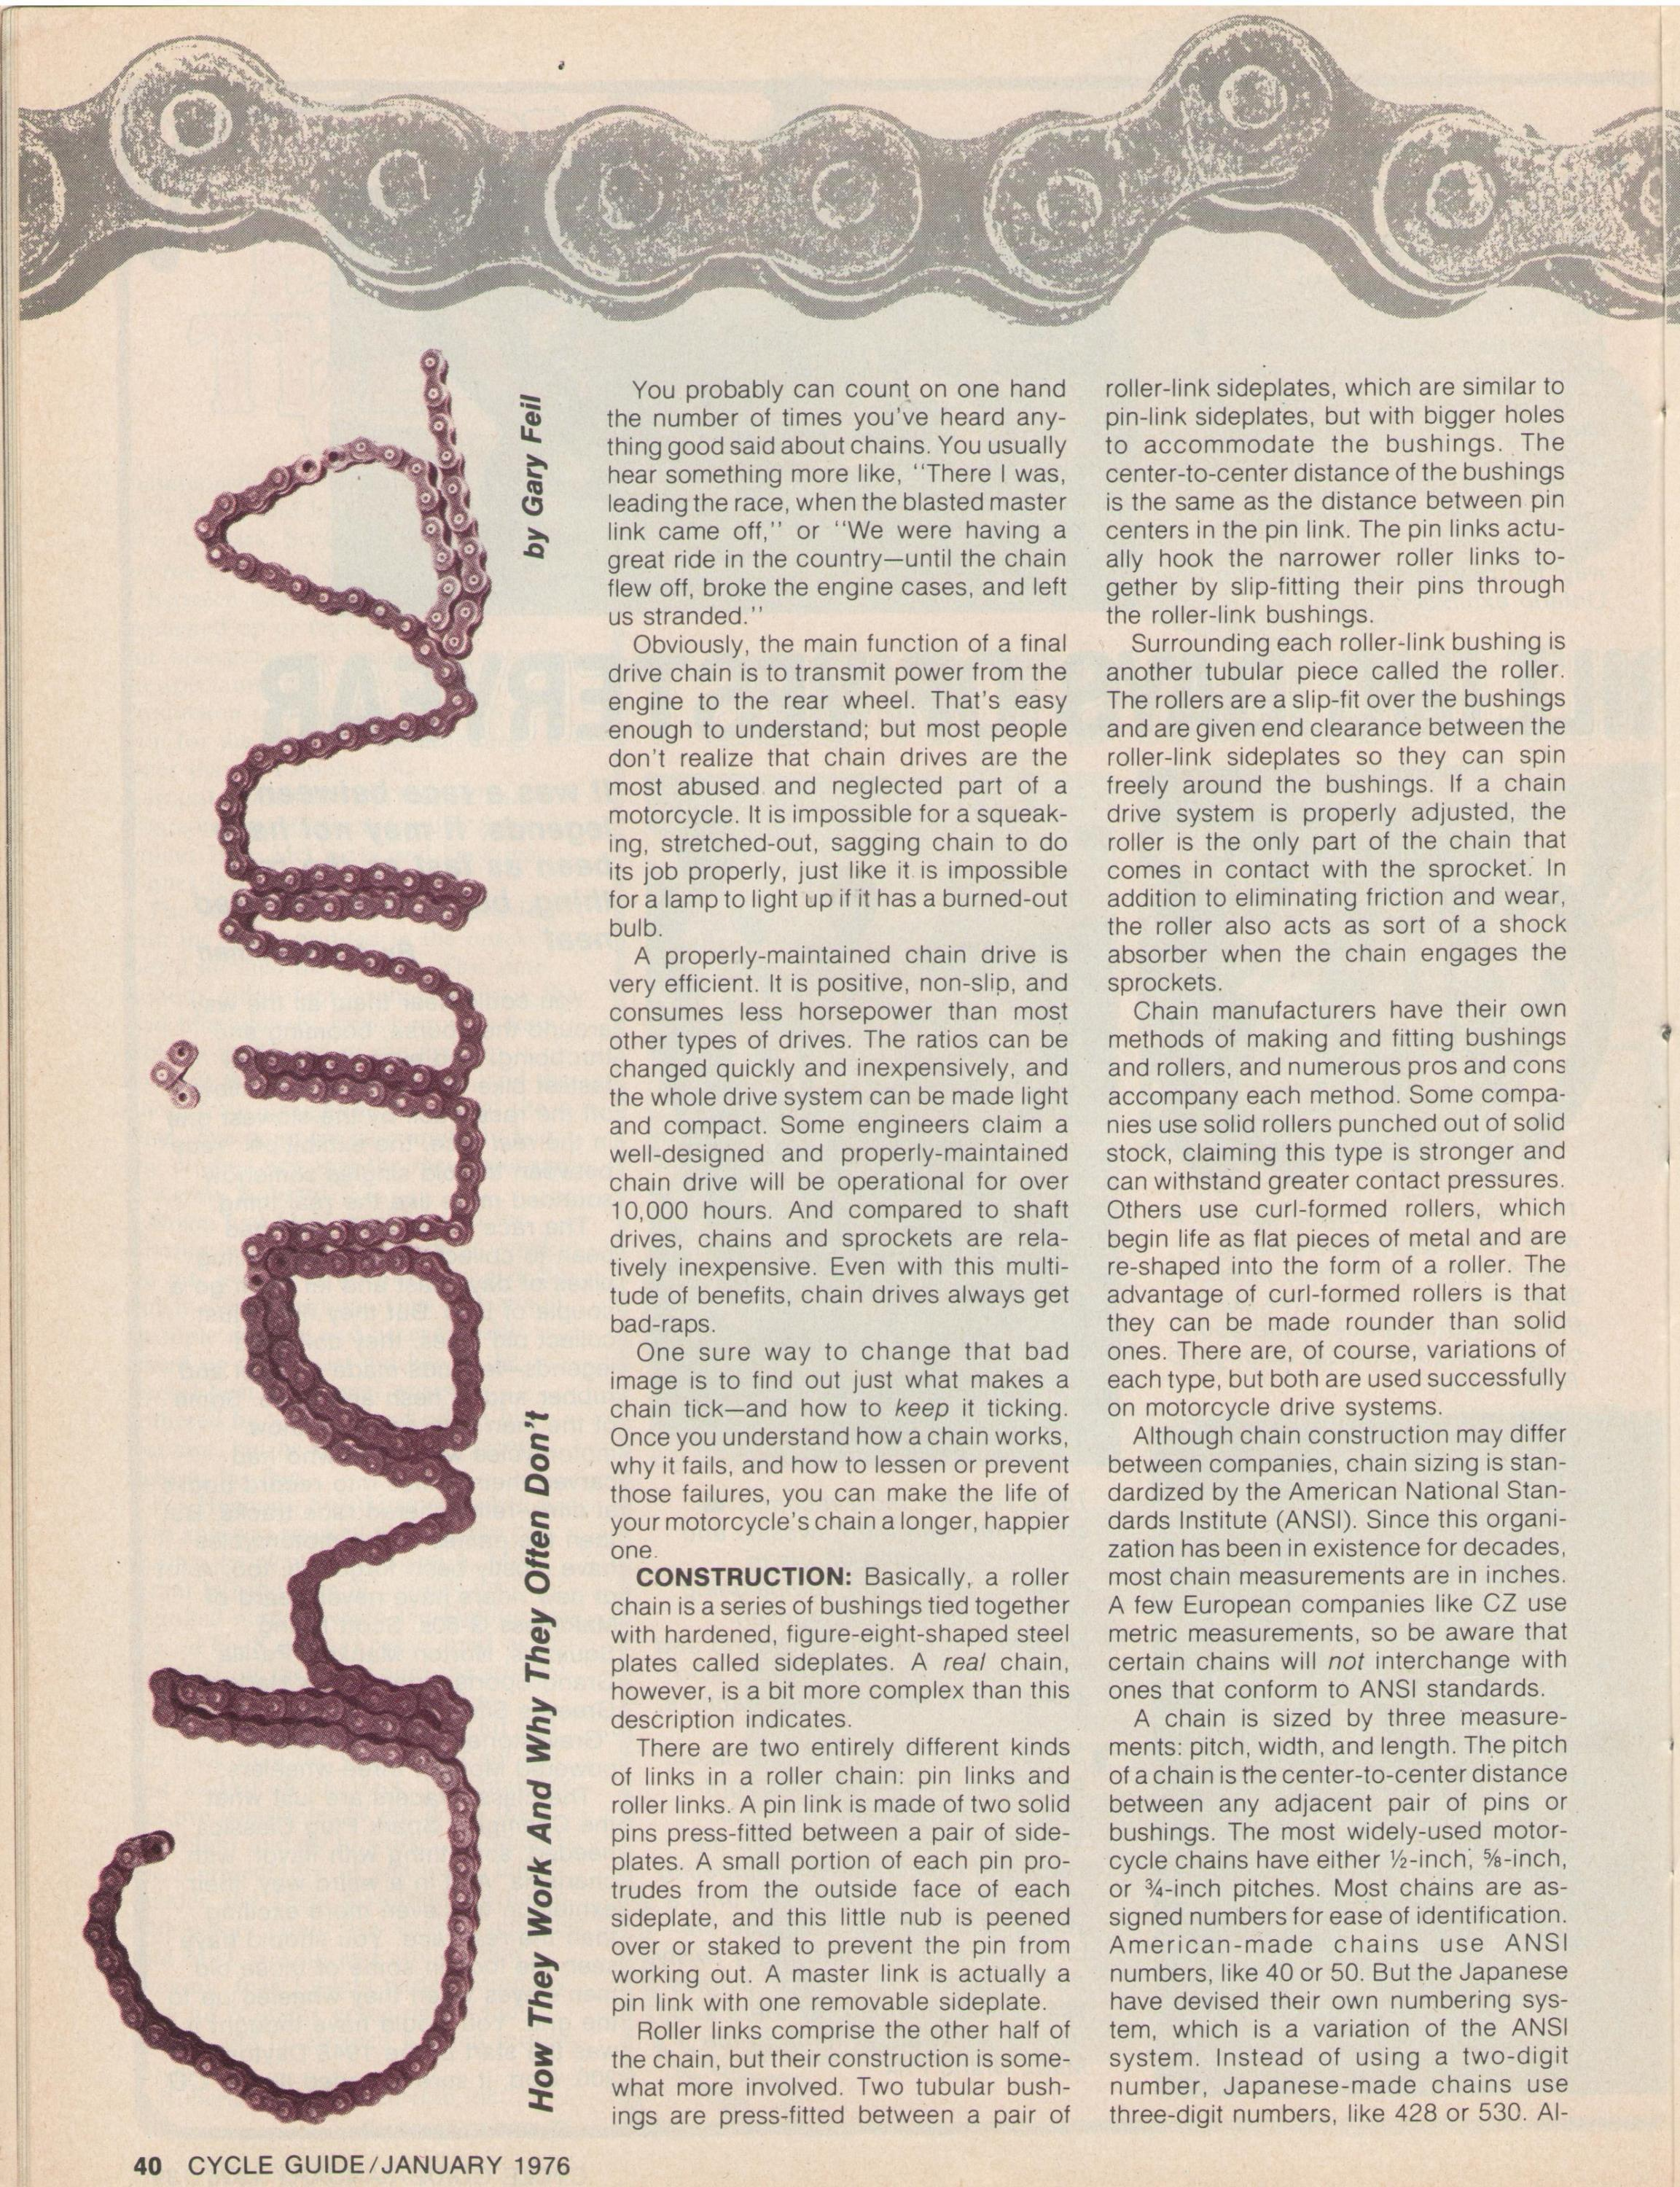 chains tech article cycle guide magazine January 1976-chains-p.1.jpg